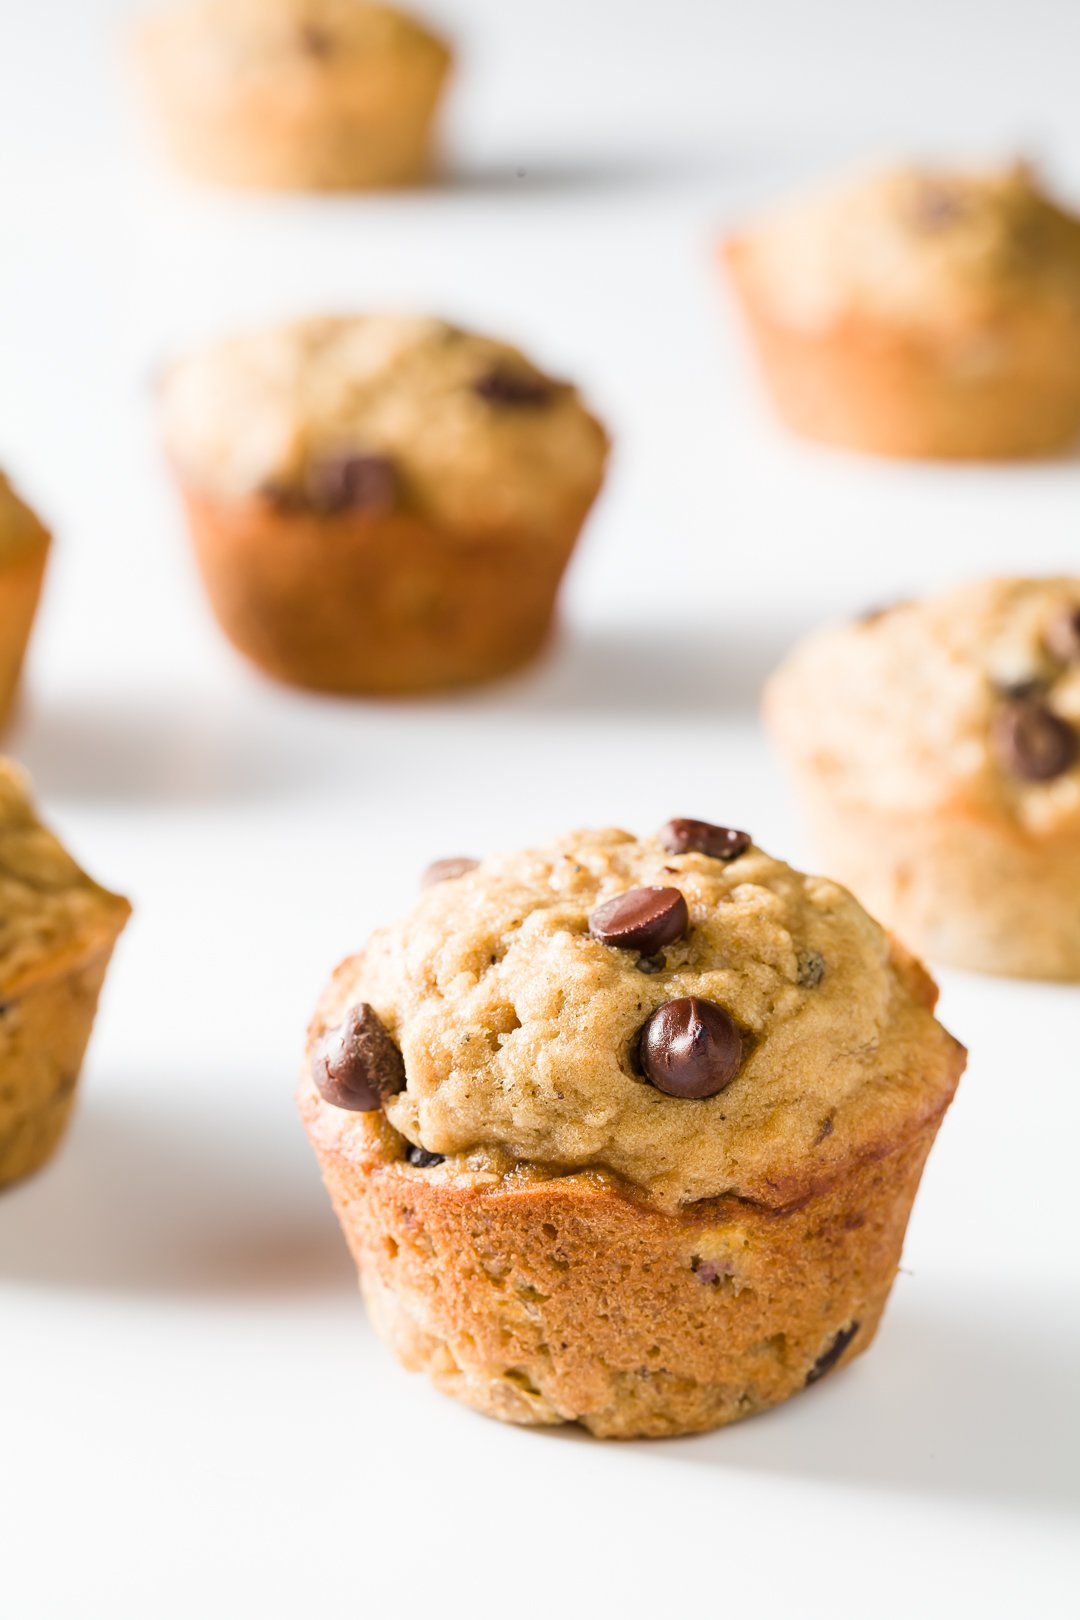 Banana oatmeal chocolate chip muffins scattered on a white background